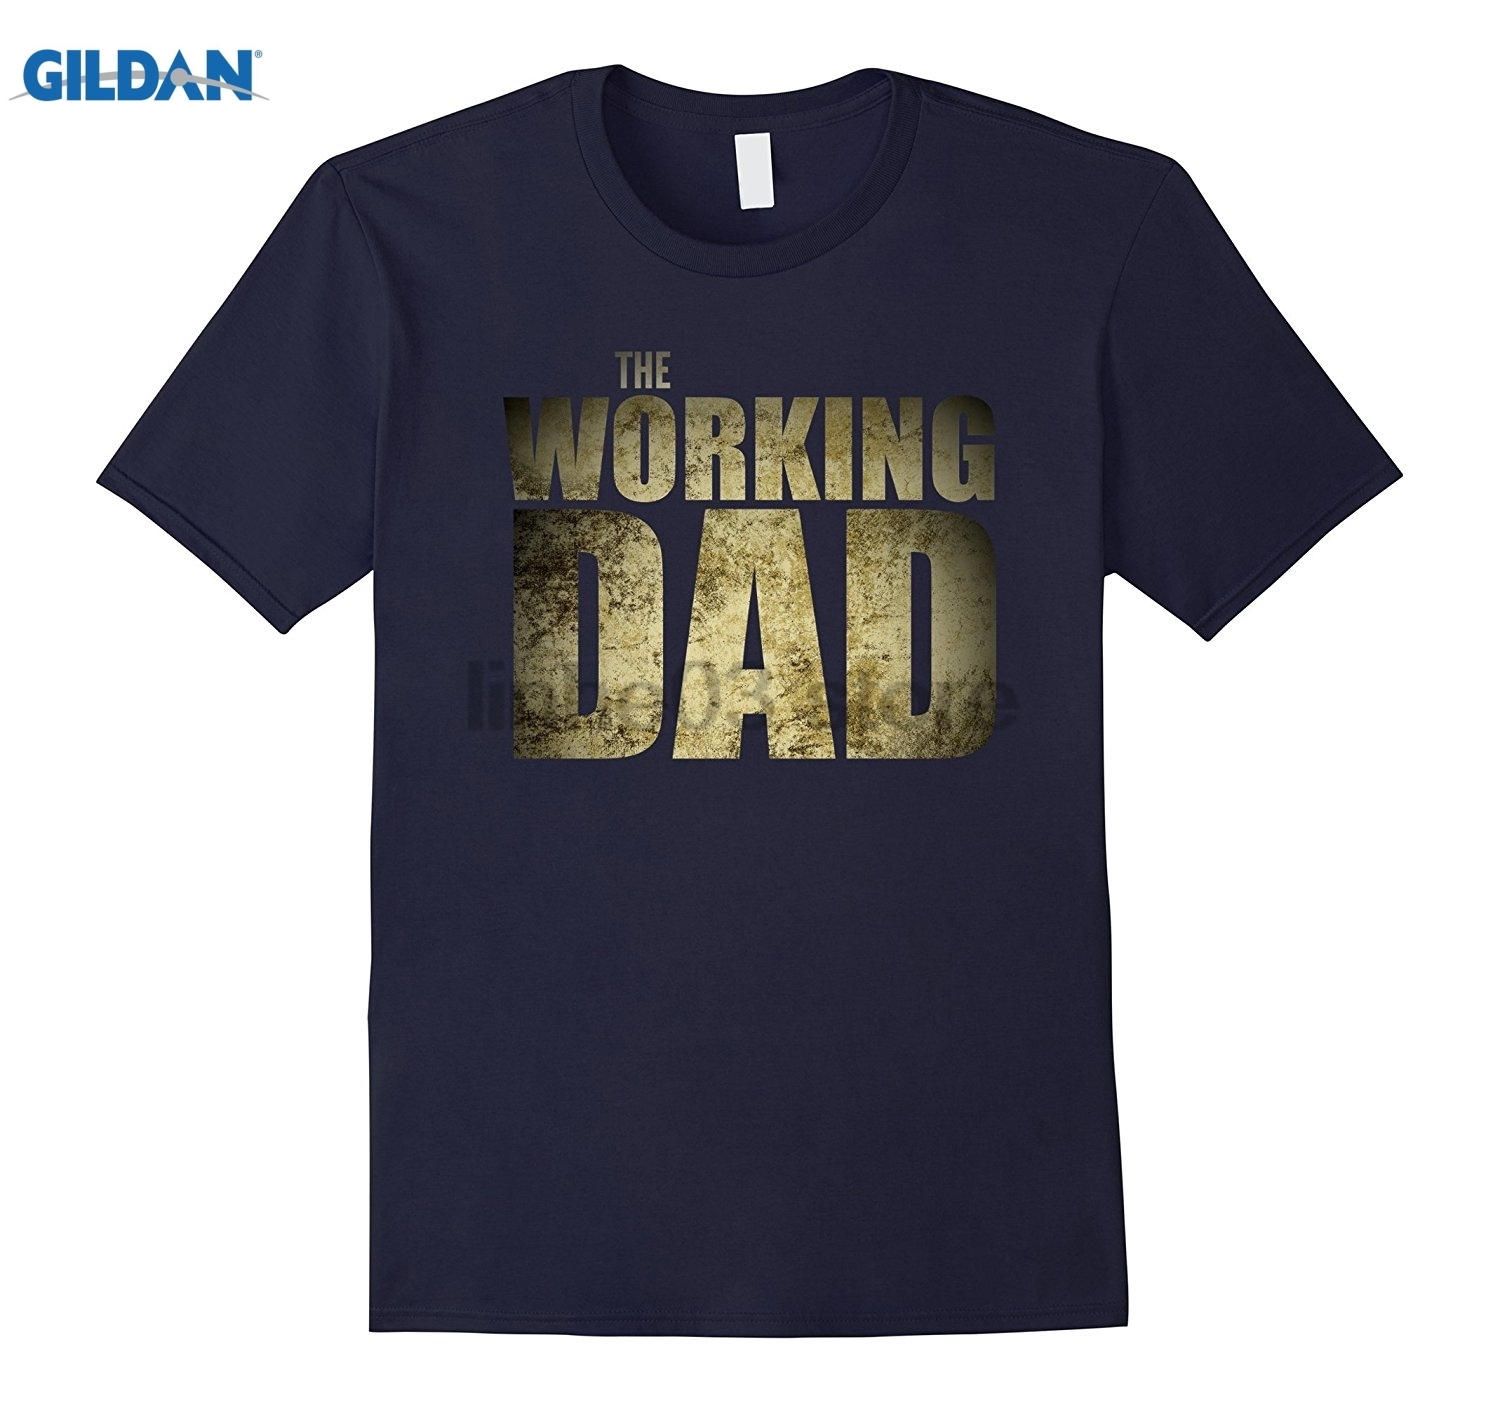 GILDAN Mens The Working Dad Funny Humorous Fathers Day T Shirt Mothers Day Ms. T-shirt